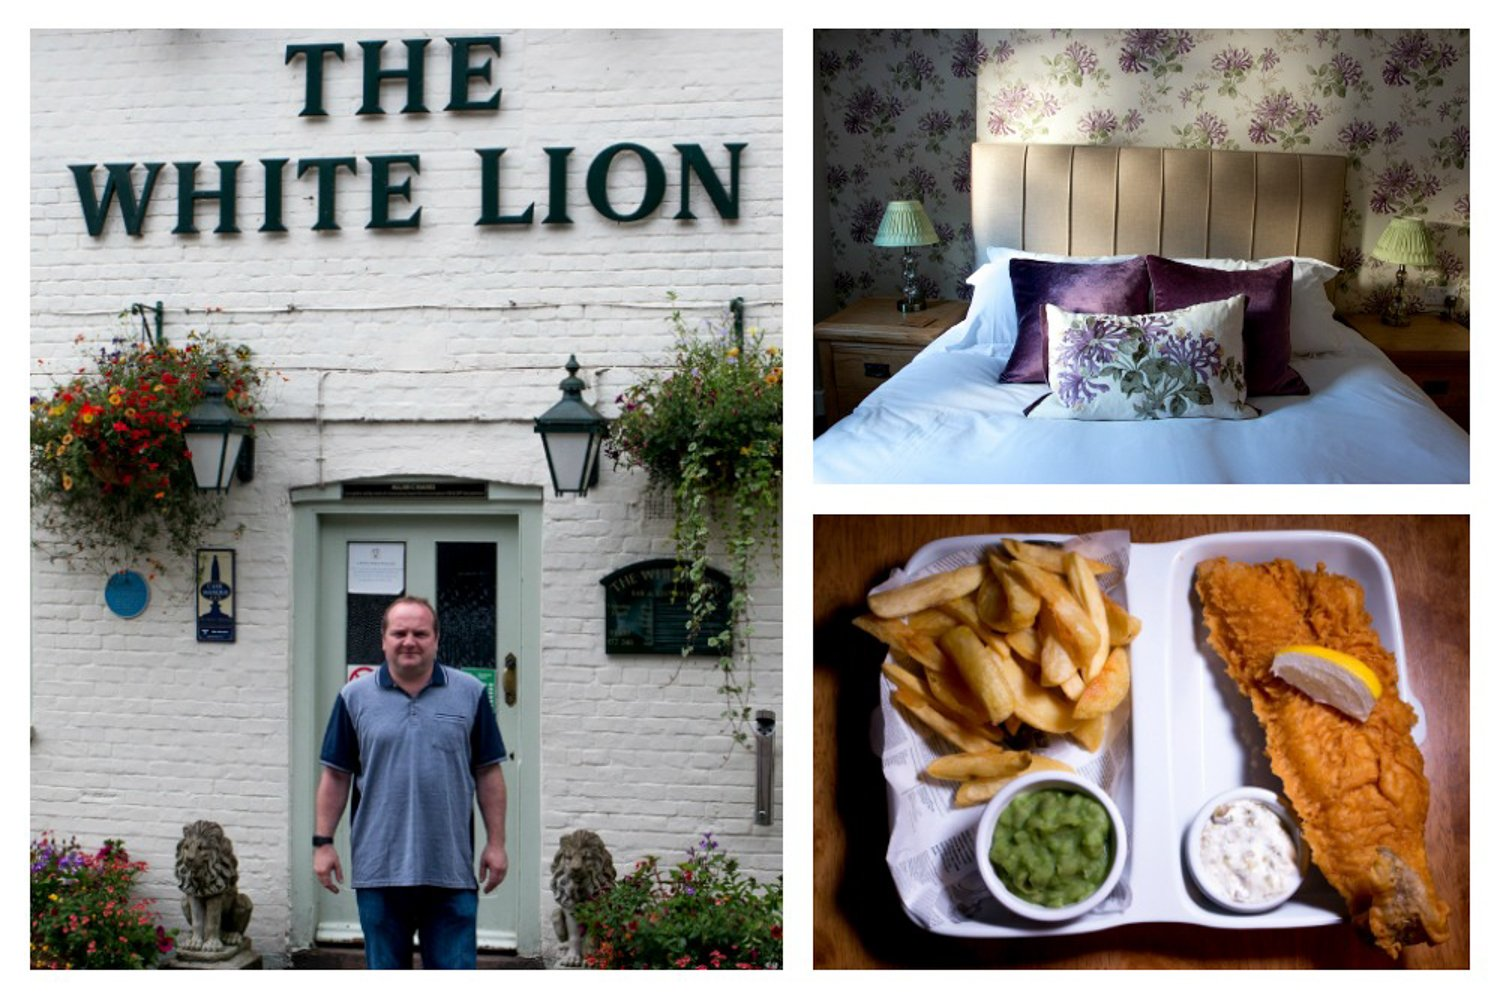 The White Lion in Soberton England